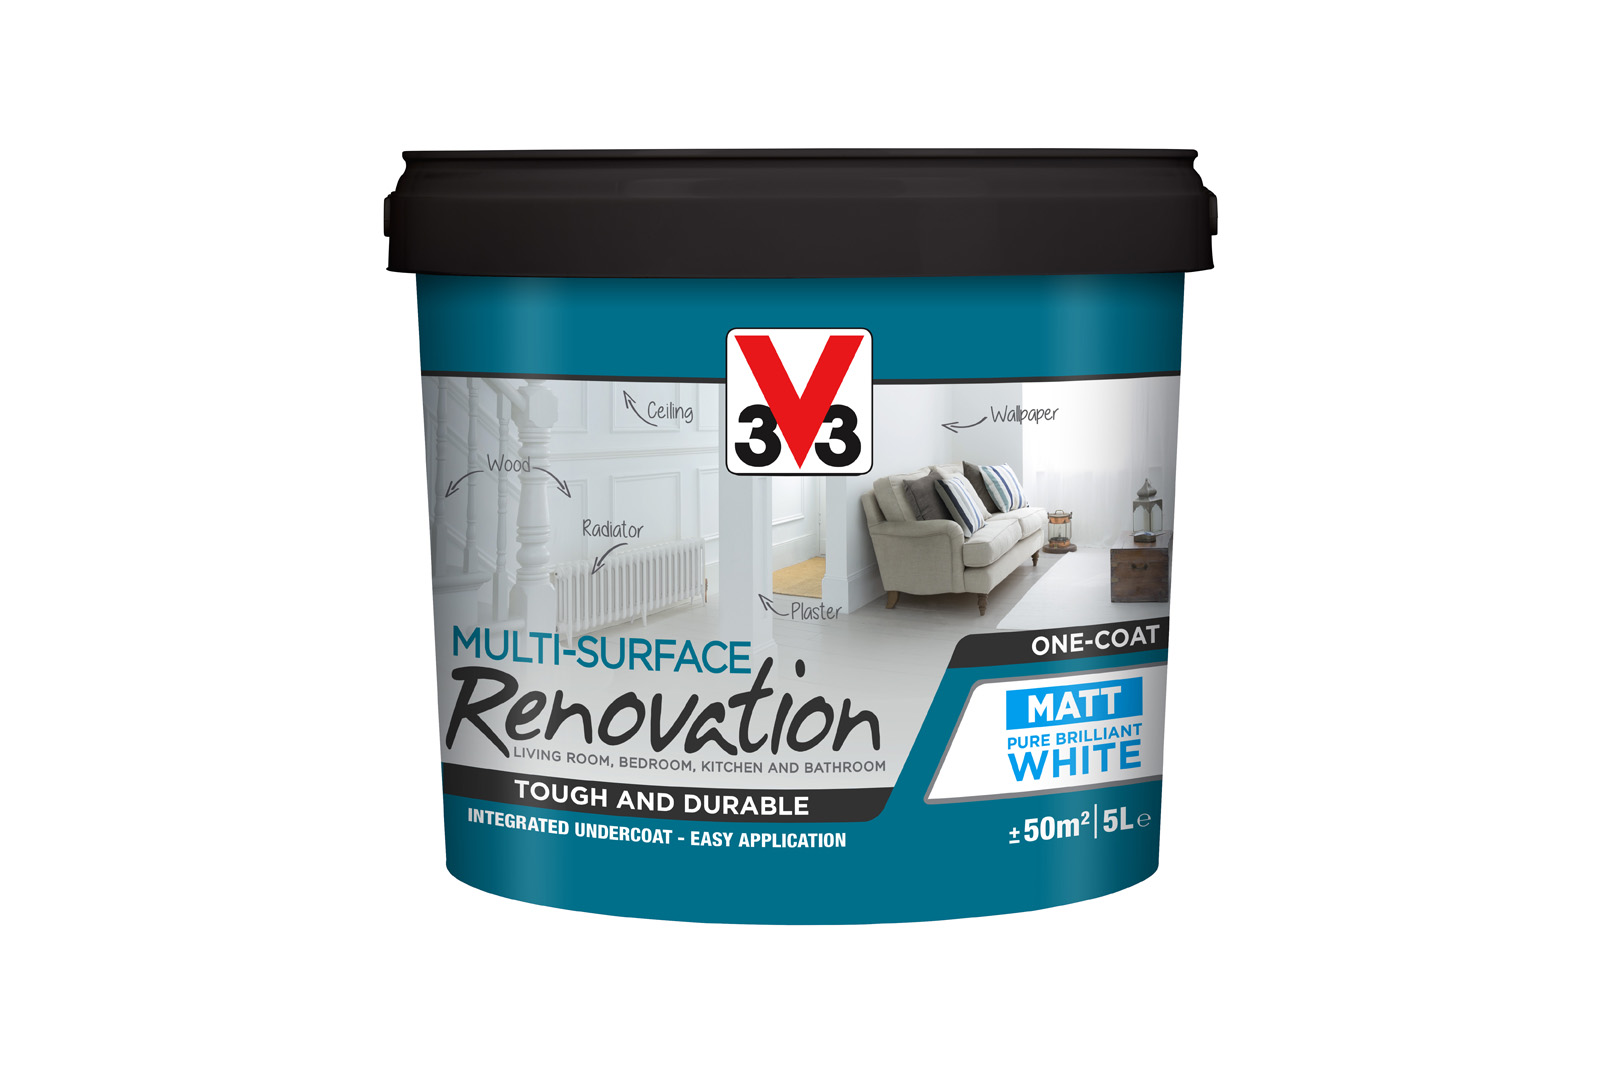 15 tubs of V33 Multi-Surface paint to win